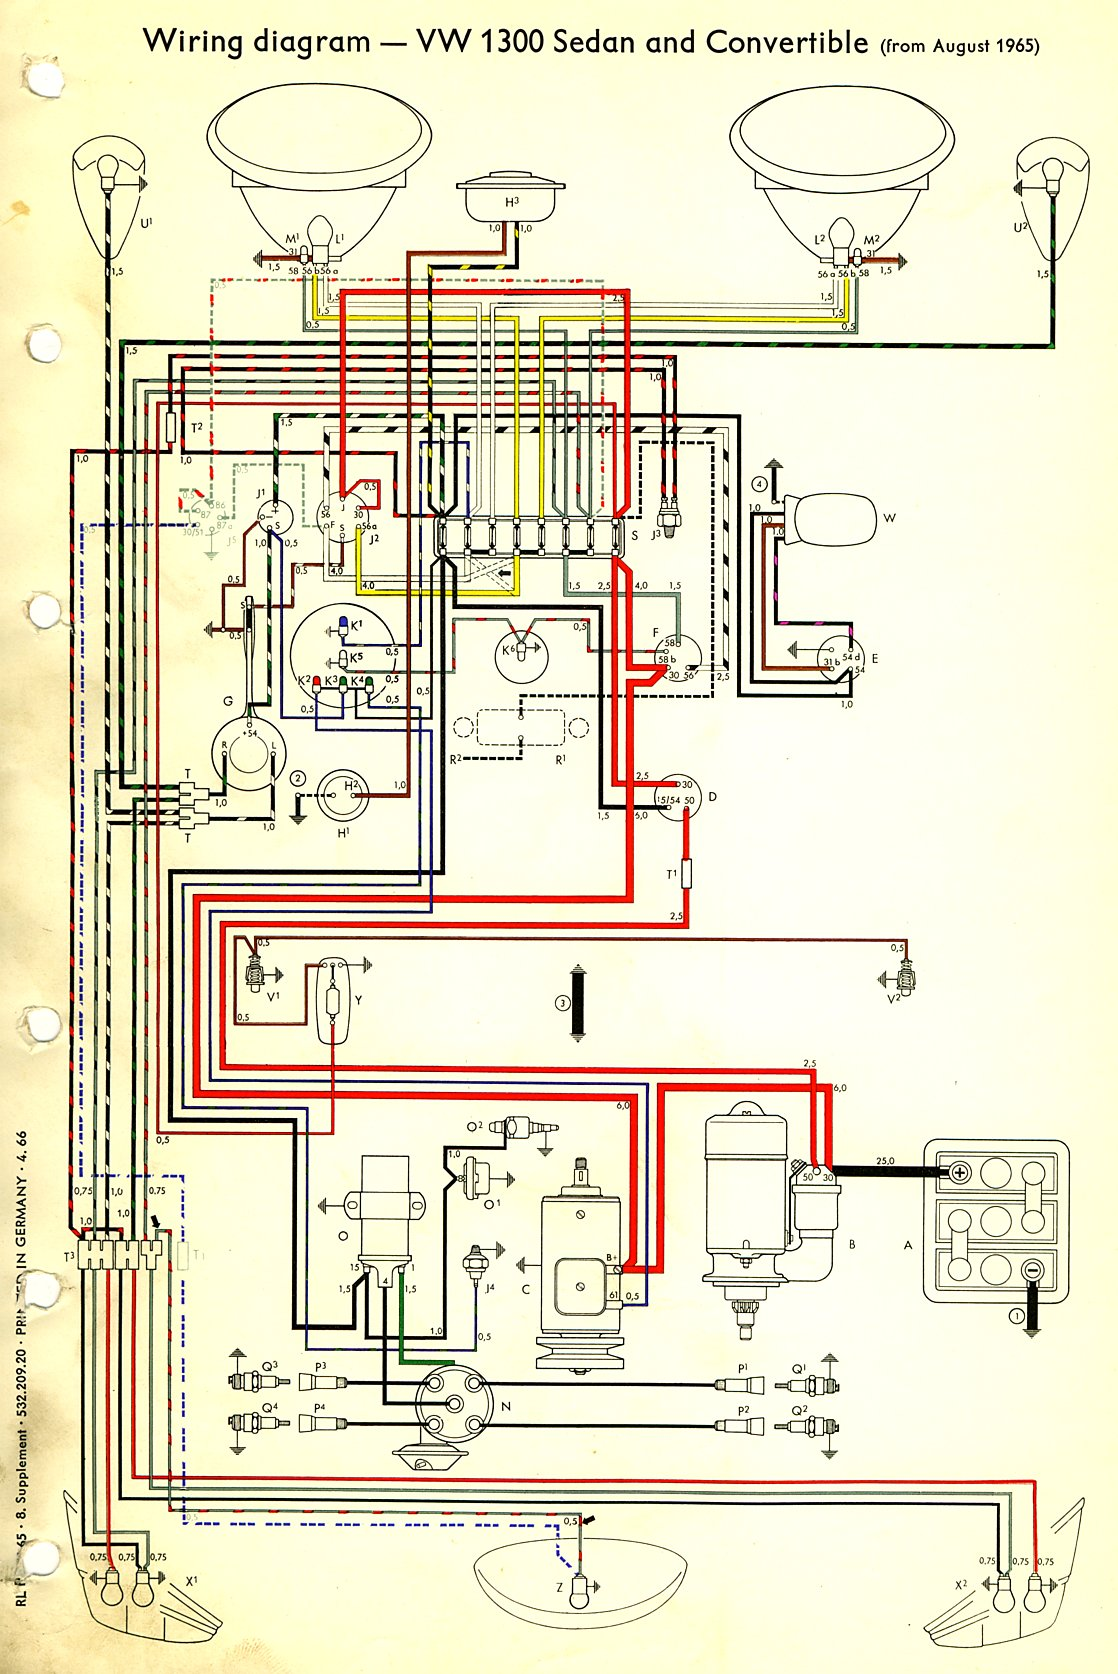 bug_66 1966 beetle wiring diagram thegoldenbug com 1973 vw beetle wiring diagram at virtualis.co